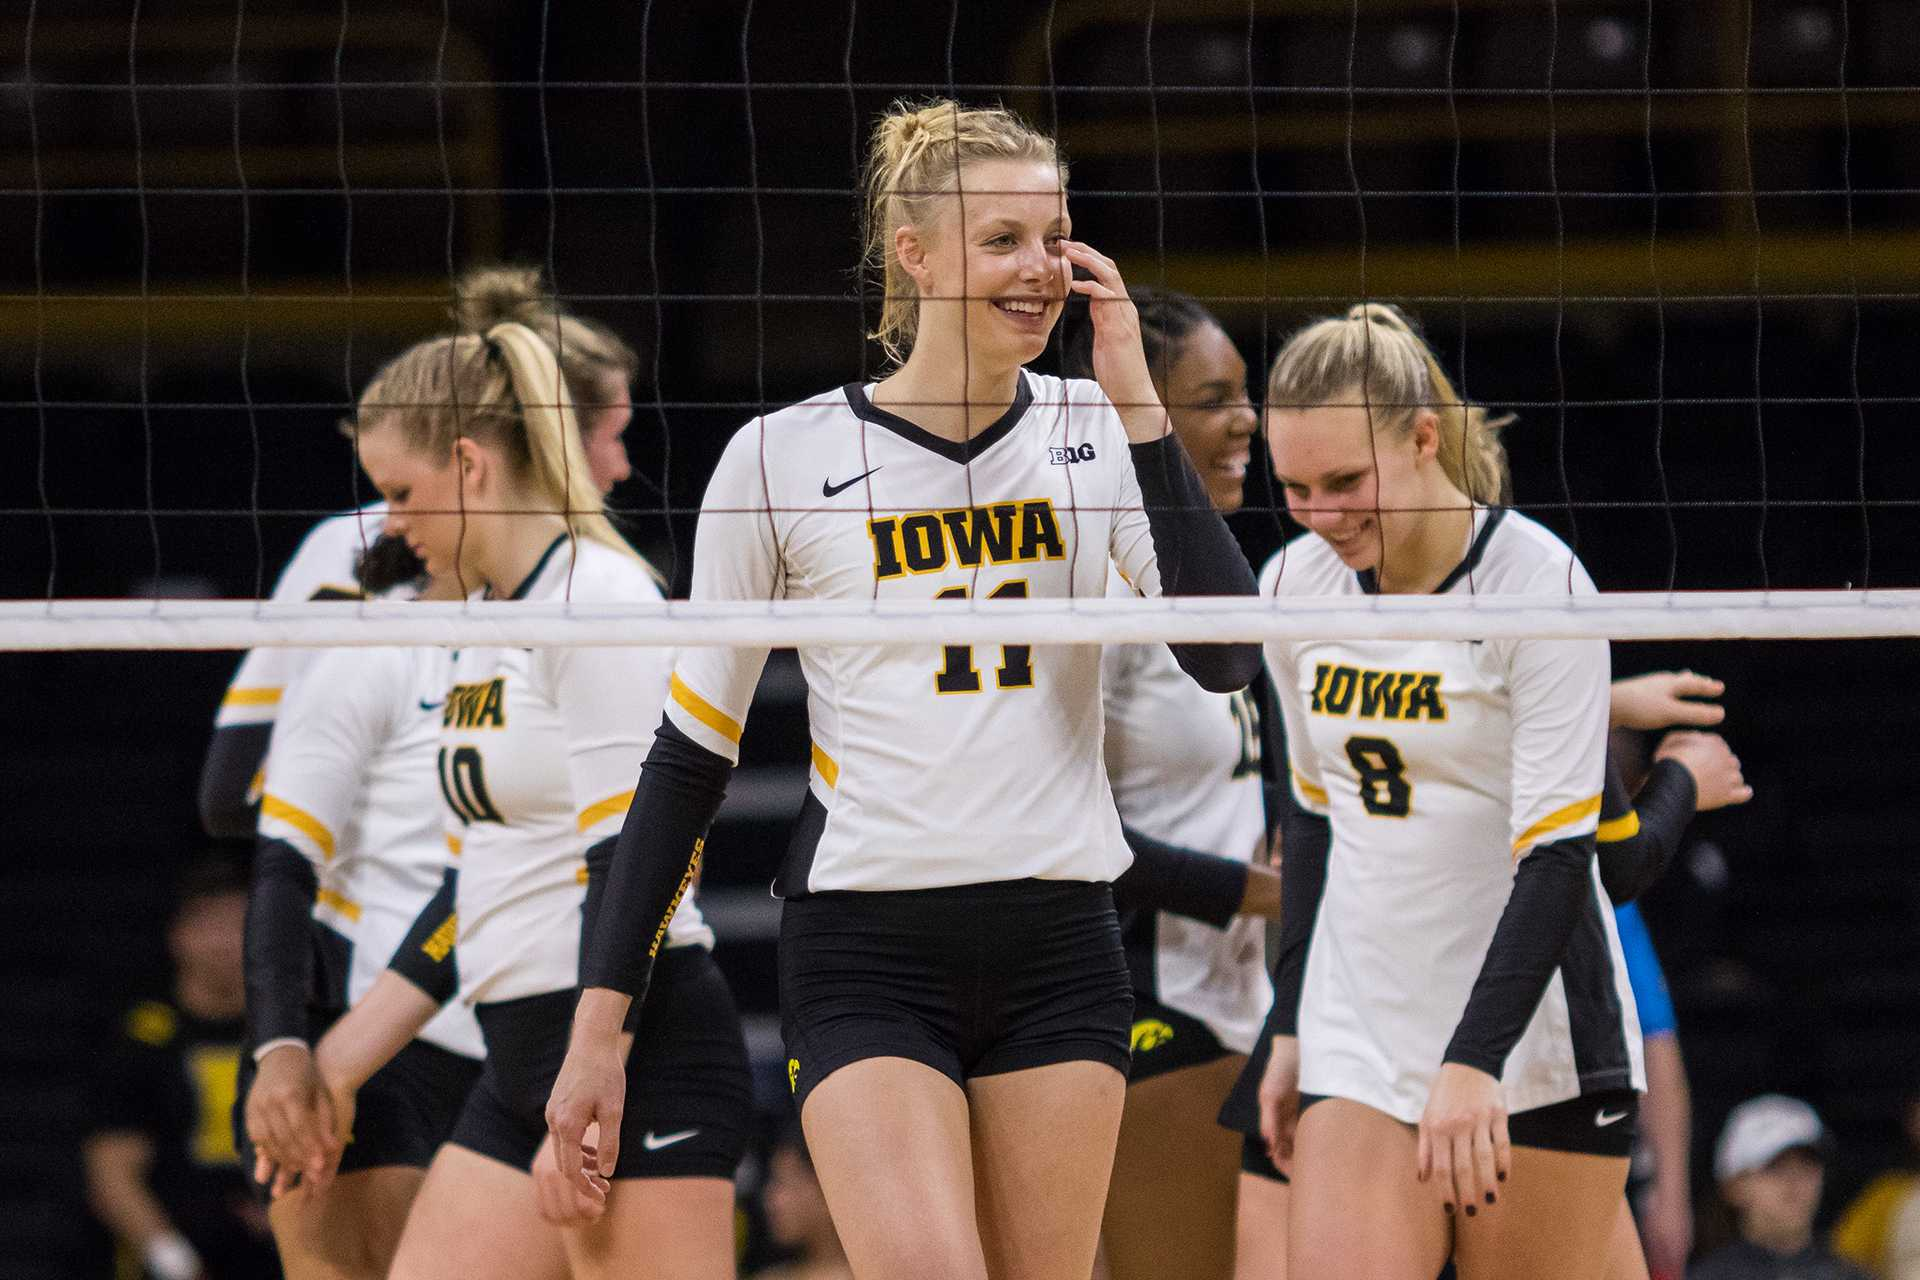 Iowa Hawkeye Volleyball player Kelsey O'Neill laughs during a match against the University of Illinois Fighting Illini on Friday, Oct. 19, 2017. The Illini defeated the Hawkeyes three sets to two. (David Harmantas/The Daily Iowan)